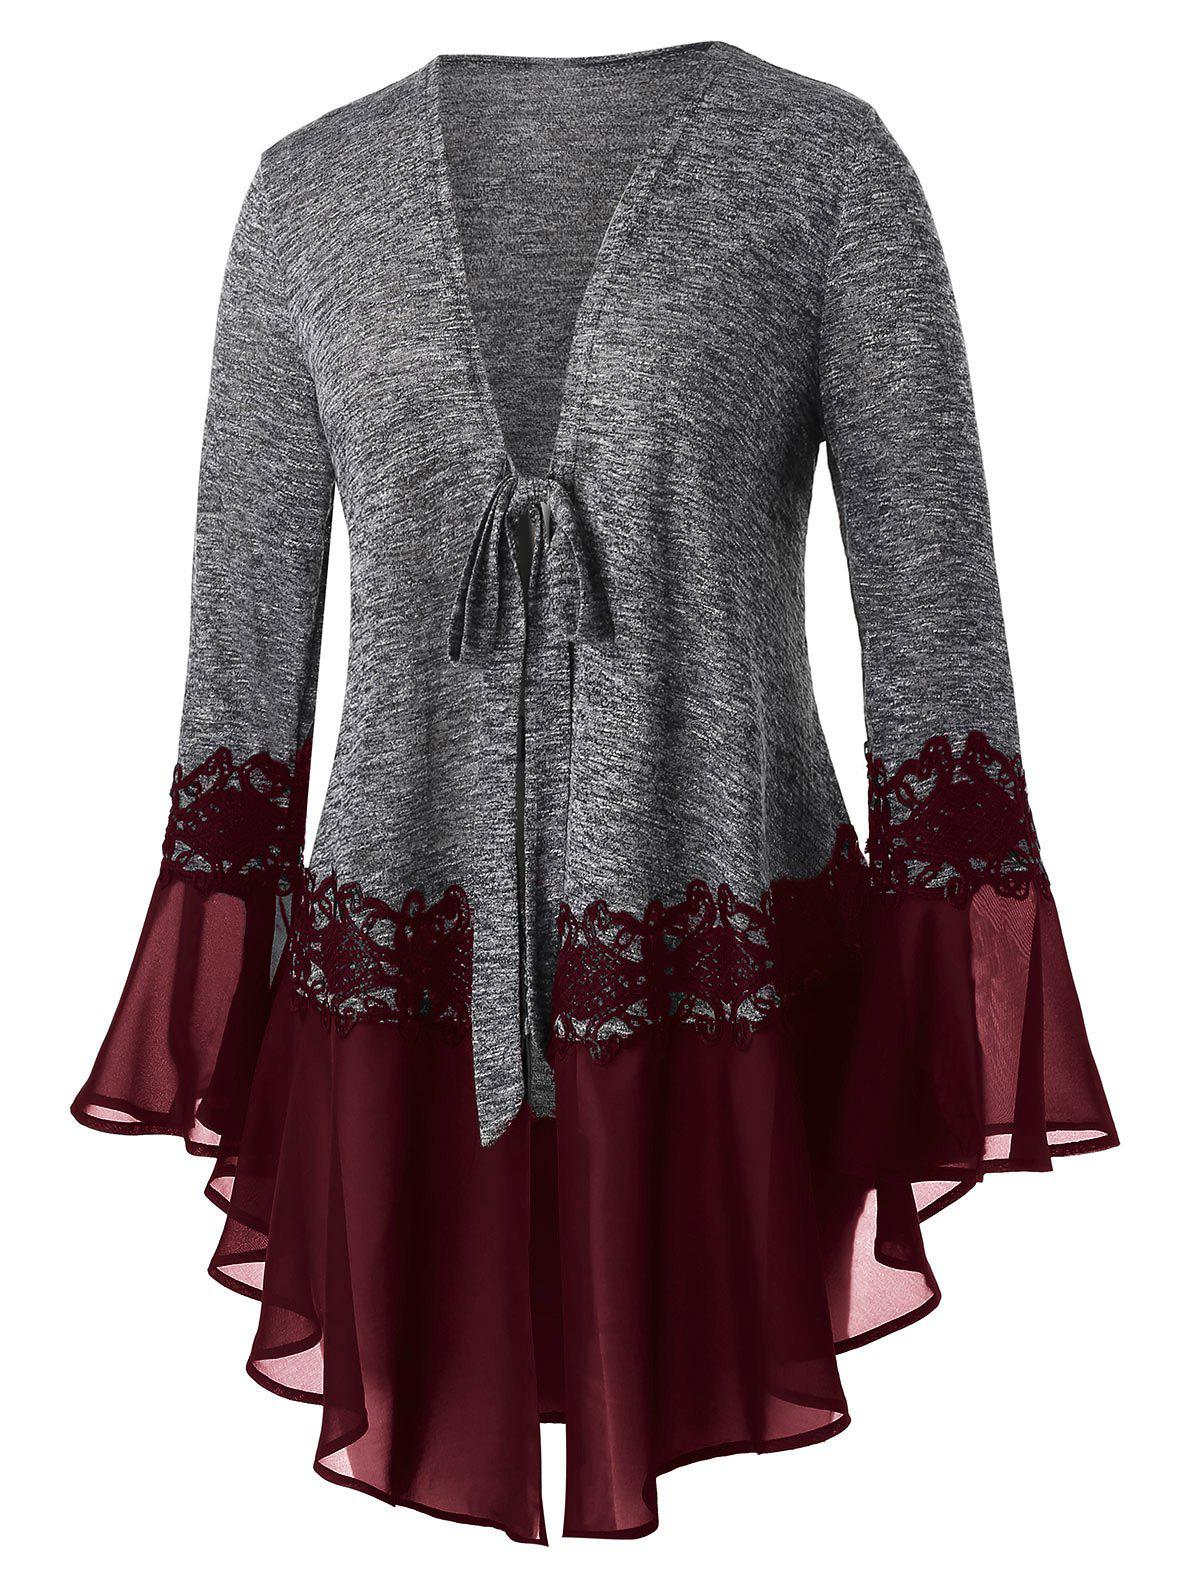 Plus Size Space Dye Tie Flare Sleeve Cardigan - RED WINE L